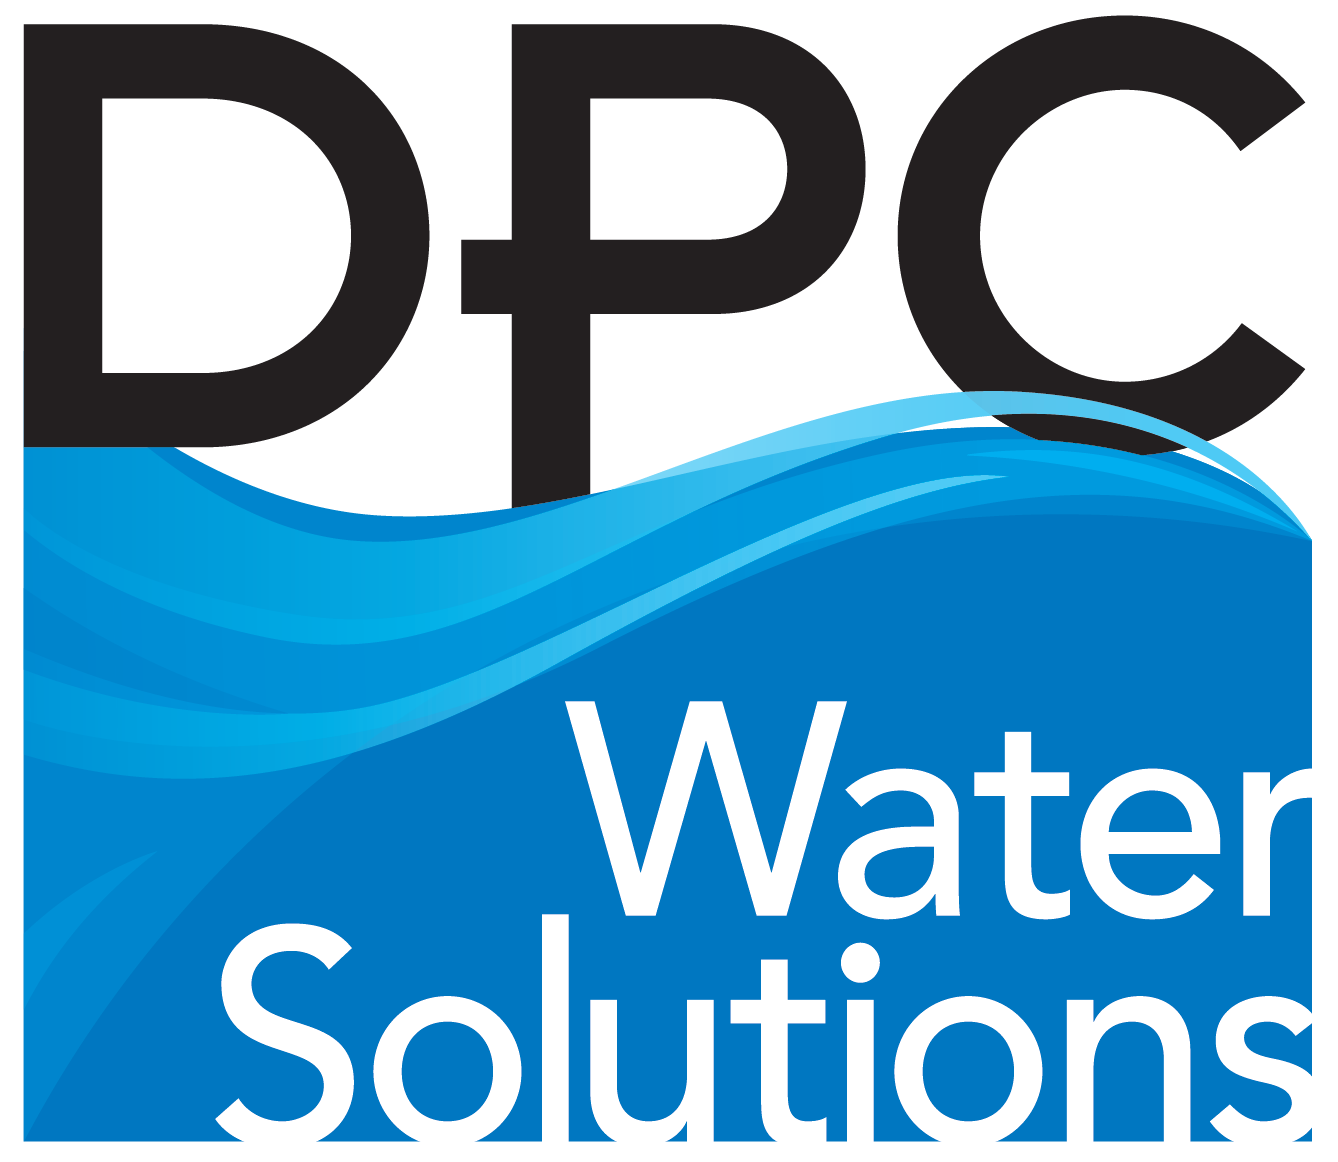 dpcwatersolutions.com